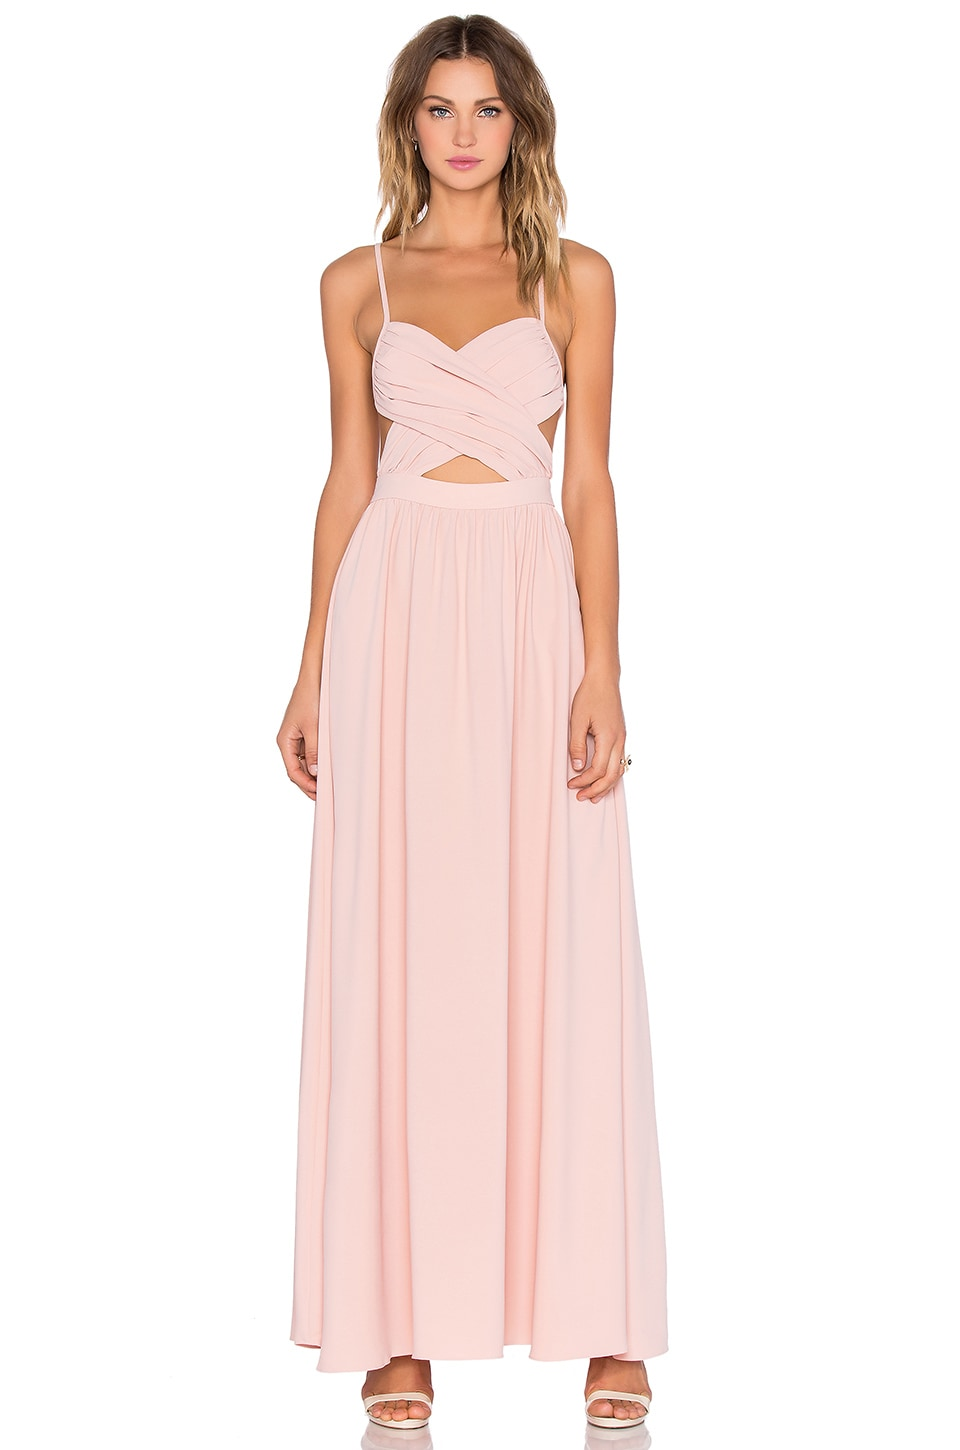 NBD Anytime Maxi Dress in Champagne Pink